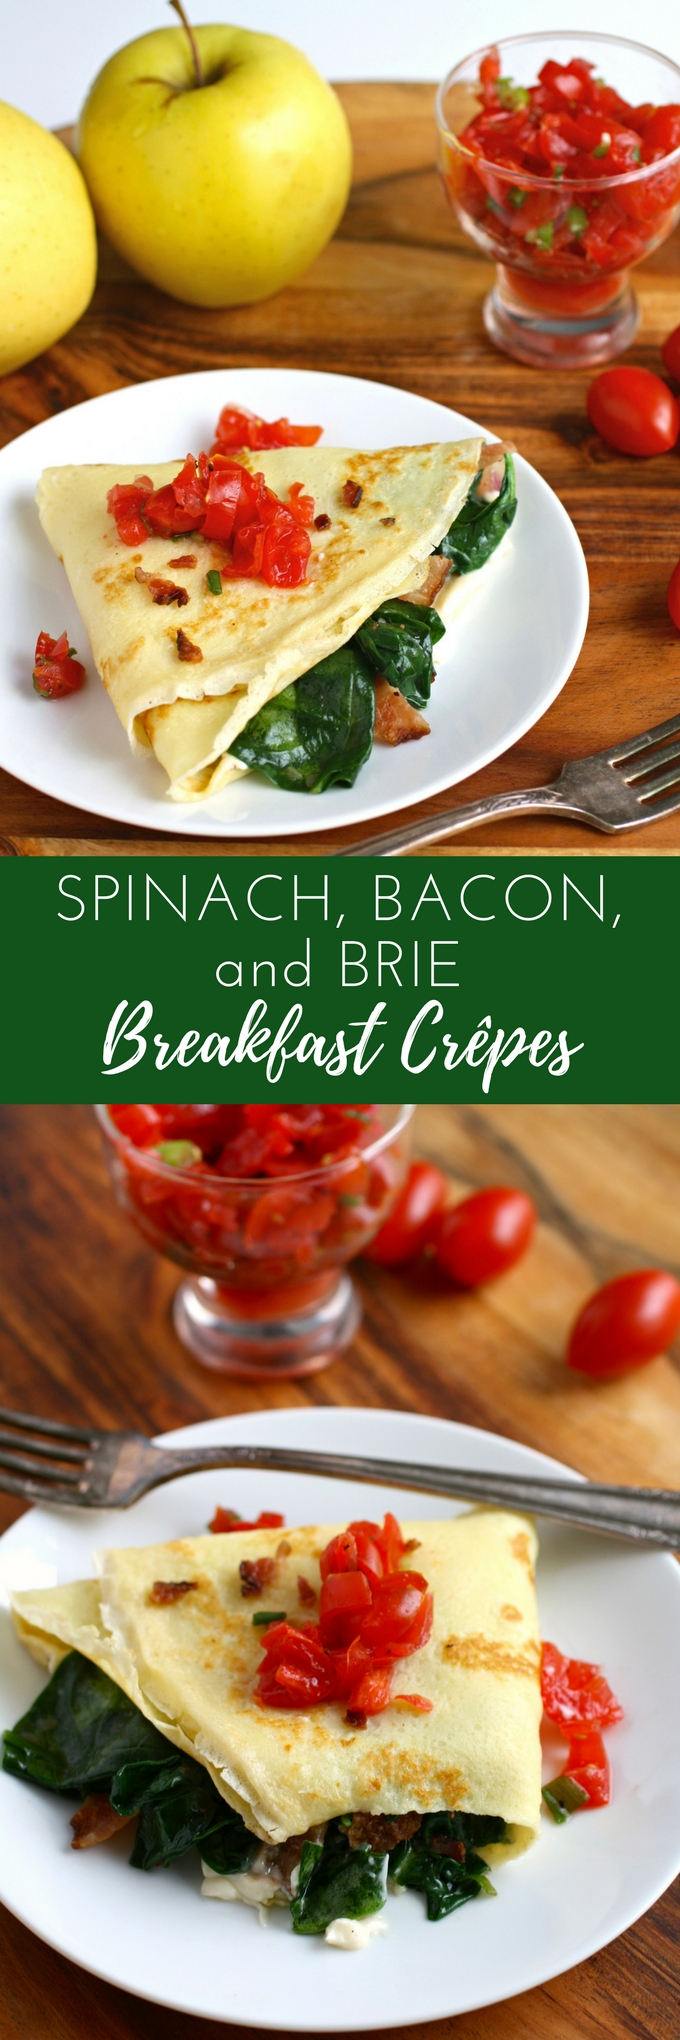 Spinach, Bacon, and Brie Breakfast Crêpes are a treat for breakfast or brunch! These crêpes are so tasty for a special breakfast!